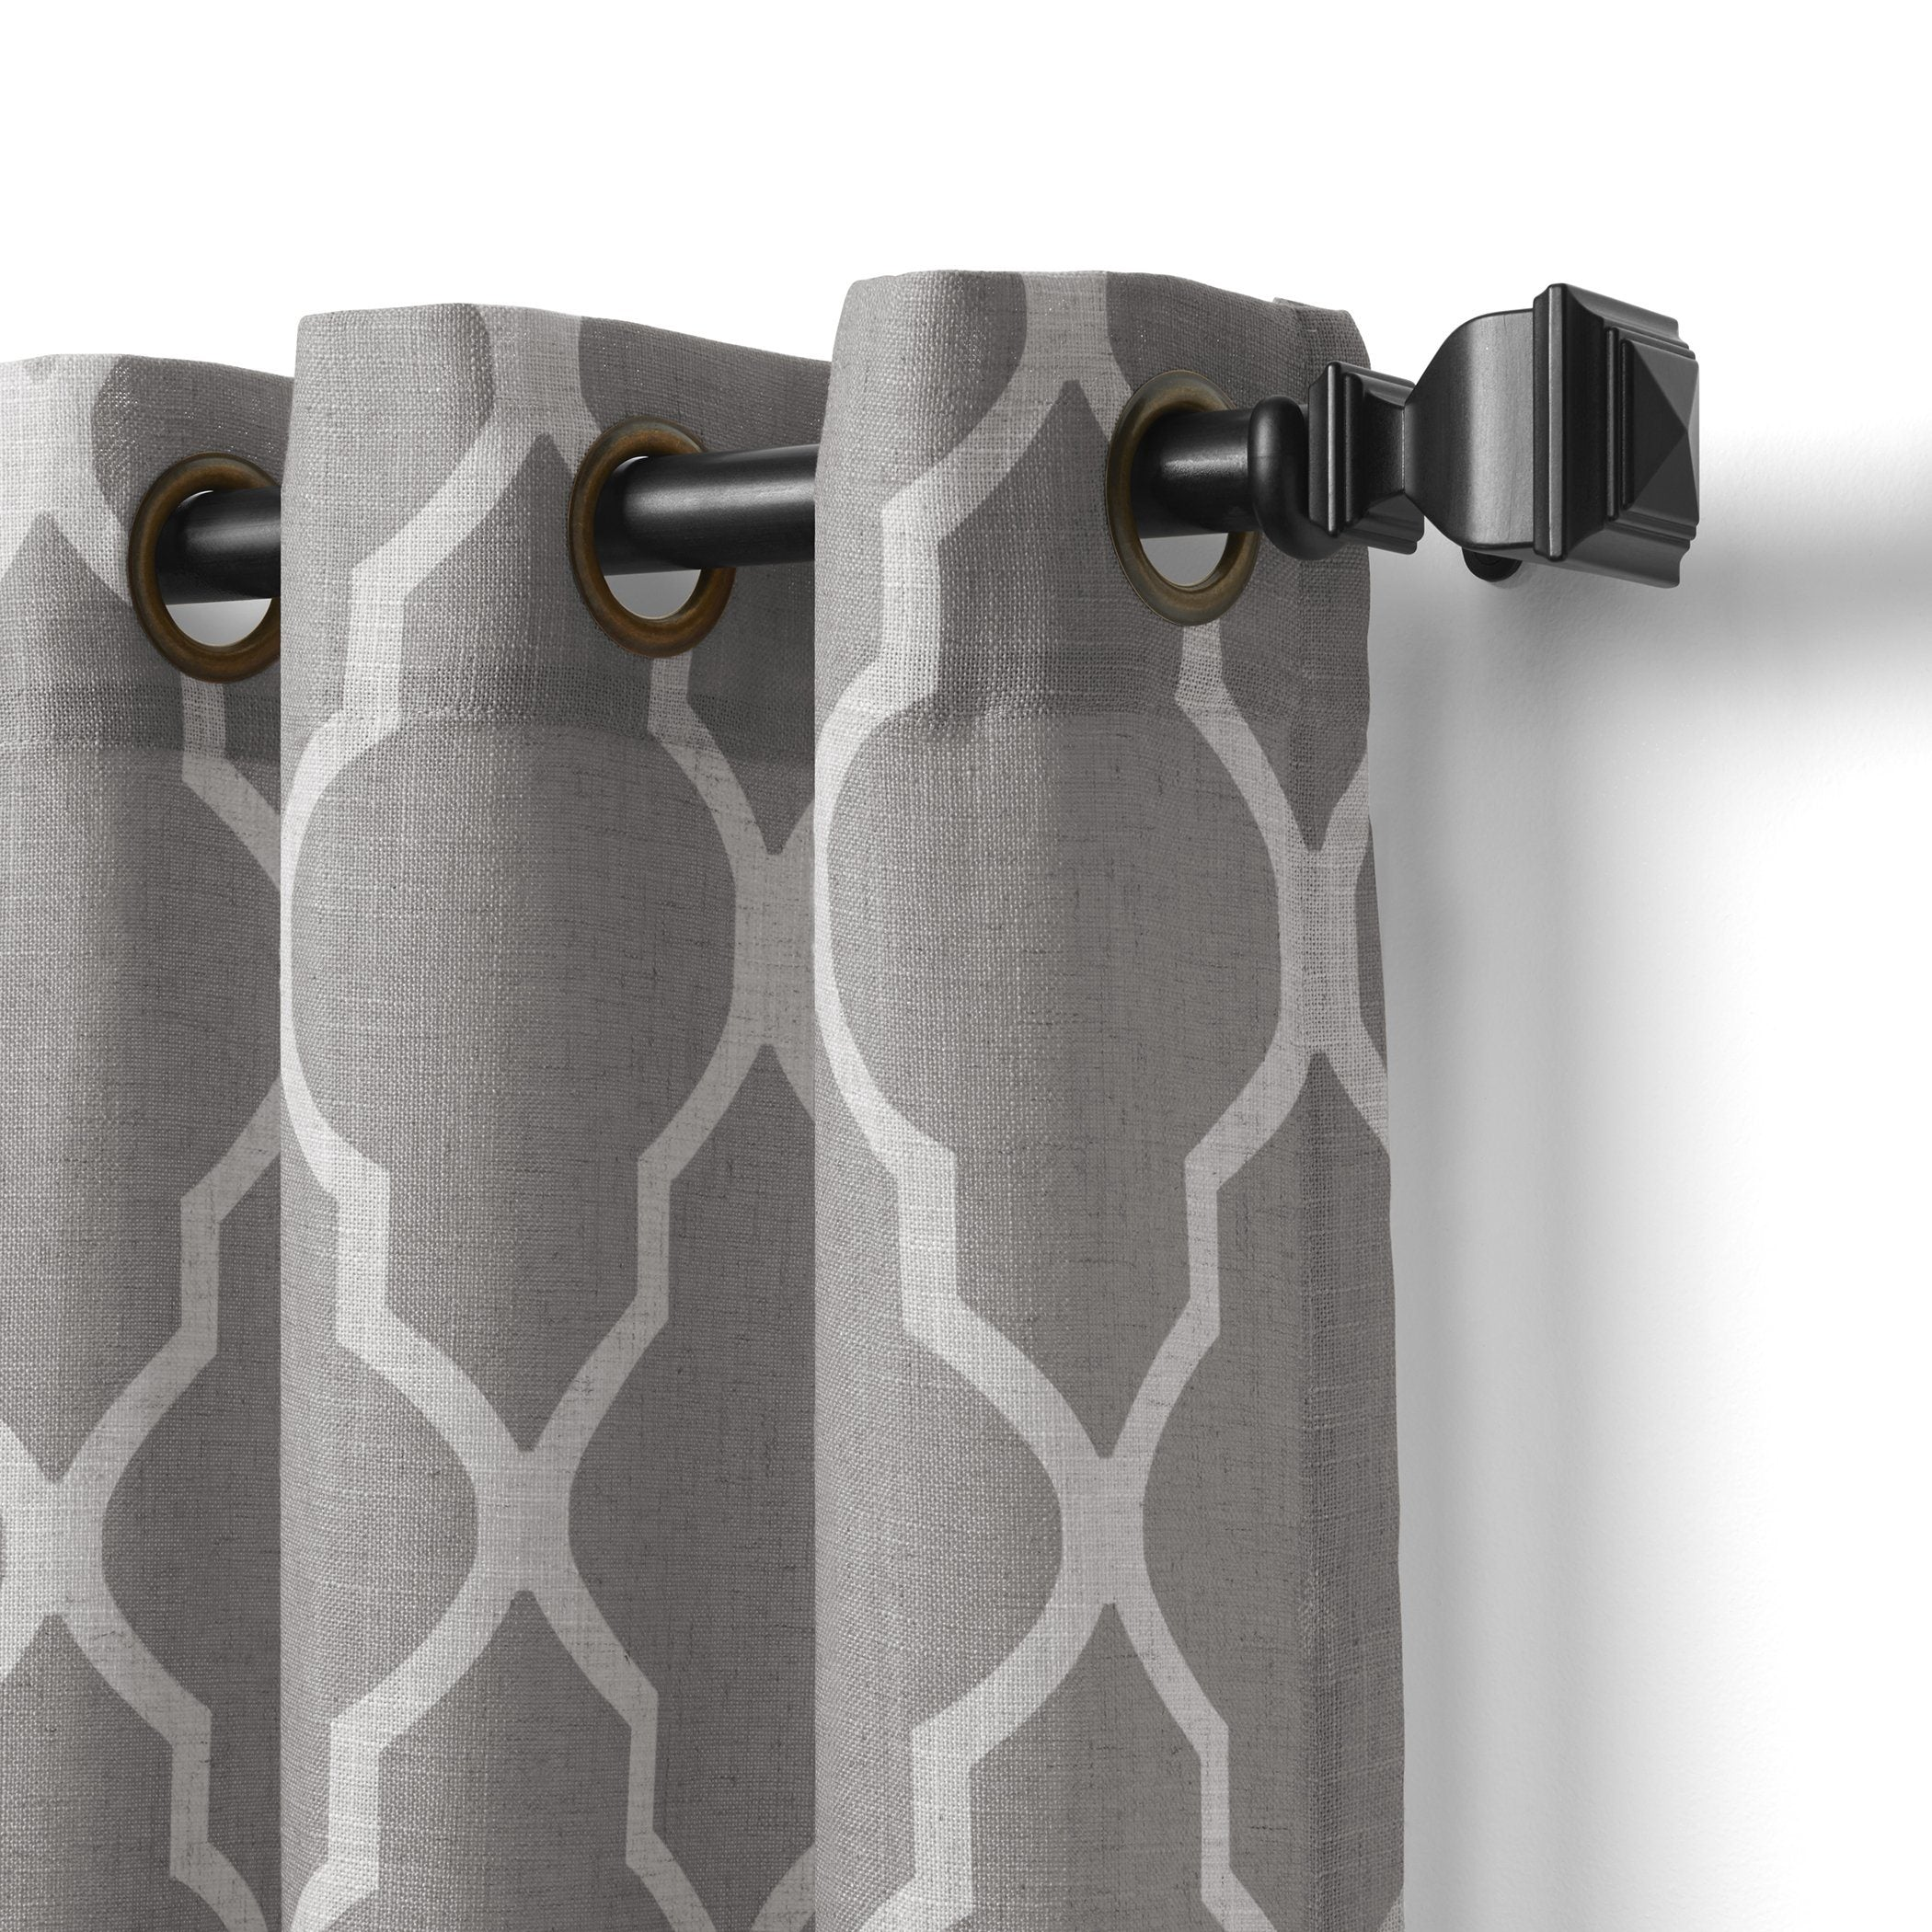 valance curtain grommet home grommetview window fashions grey products panel medalia elrene top